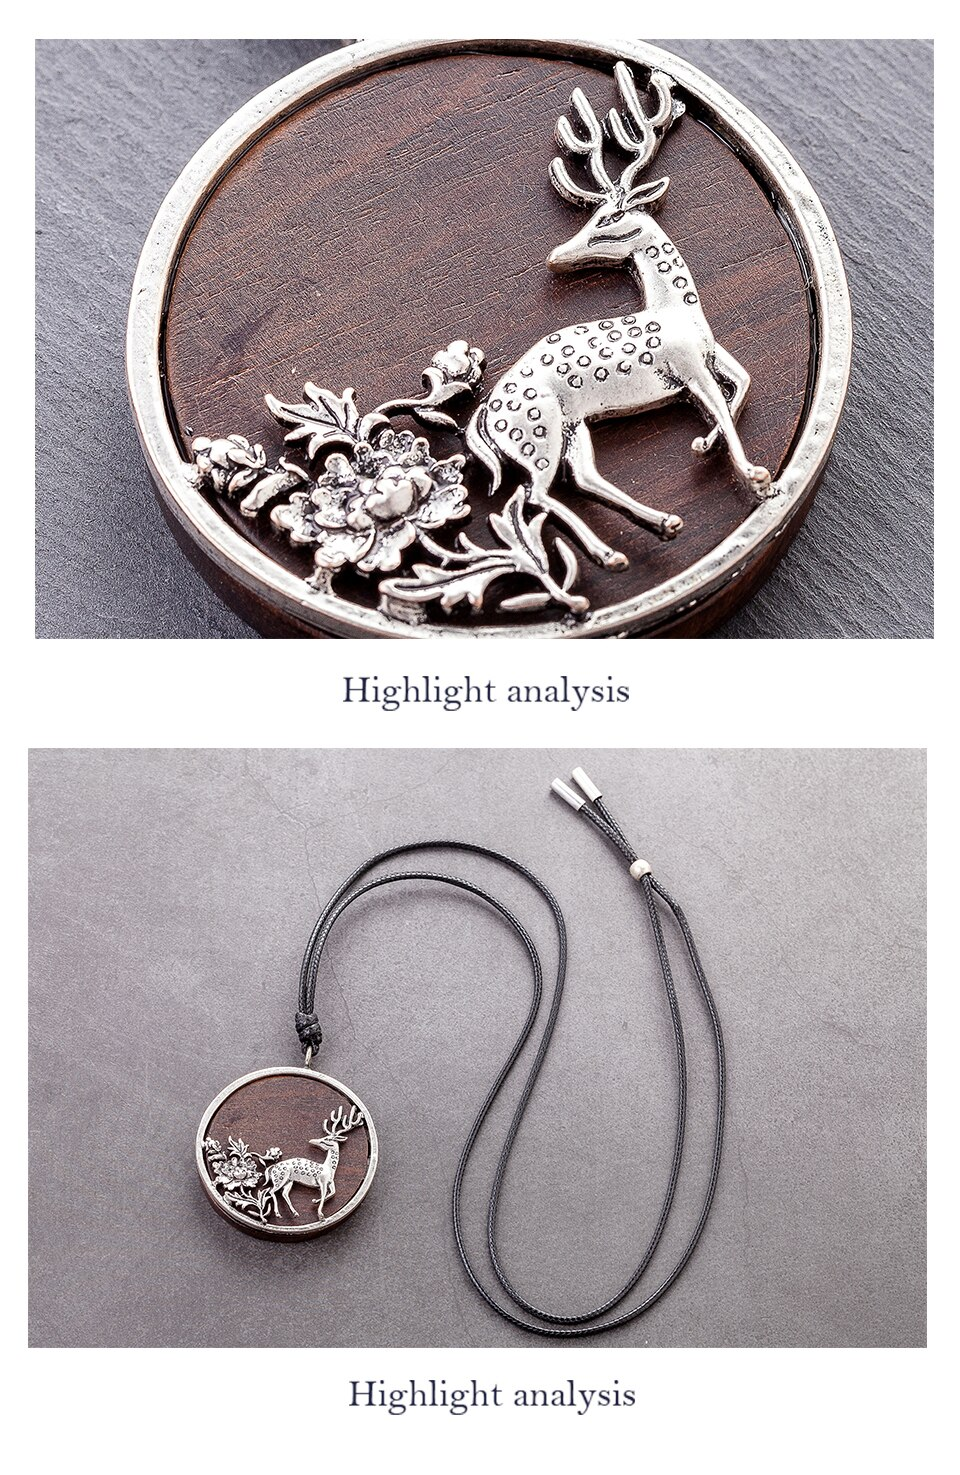 Lovely Deer Accessories Bijouterie Female Pendants Jewelry on the Neck Decoration Gifts Large Massive Necklaces for Women Lovers